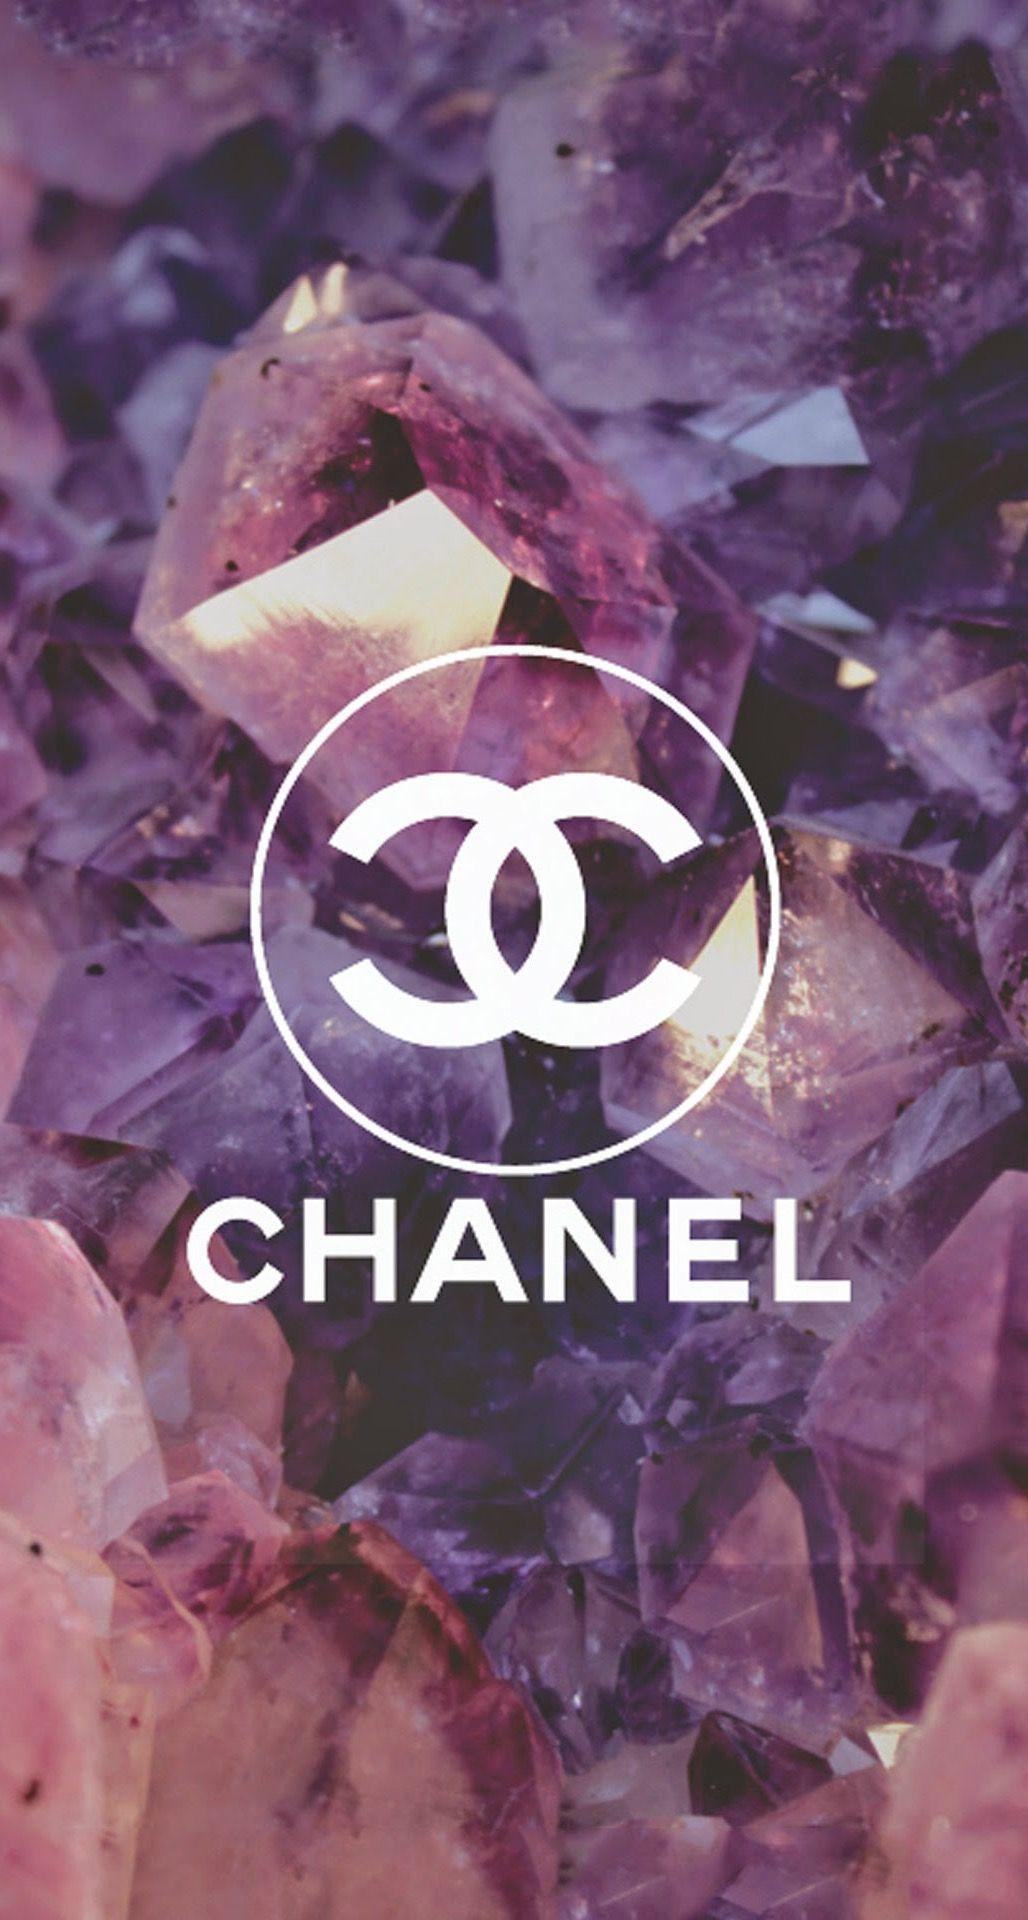 Coco Chanel Logo Diamonds iPhone 6 Plus HD Wallpapers / iPod